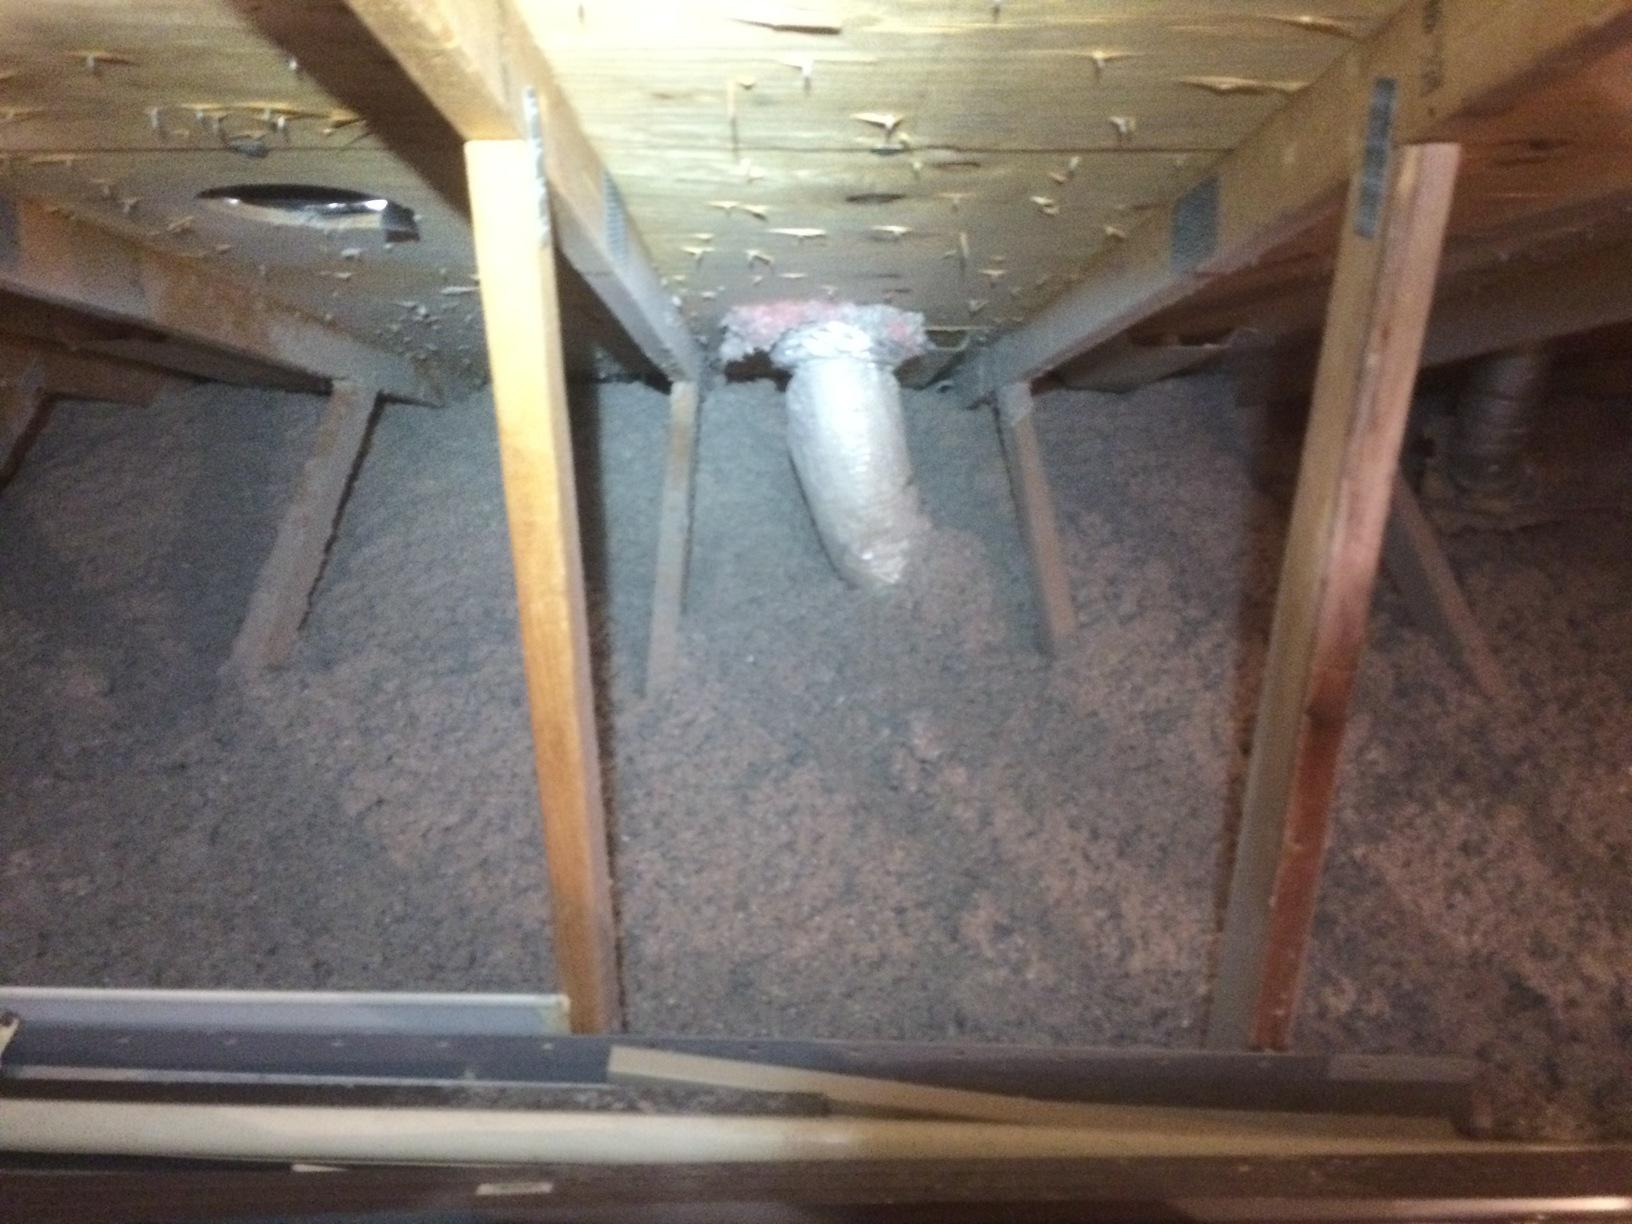 Mold Removal and Traditional Air Seal/Insulate Attic in Appleton, WI - After Photo